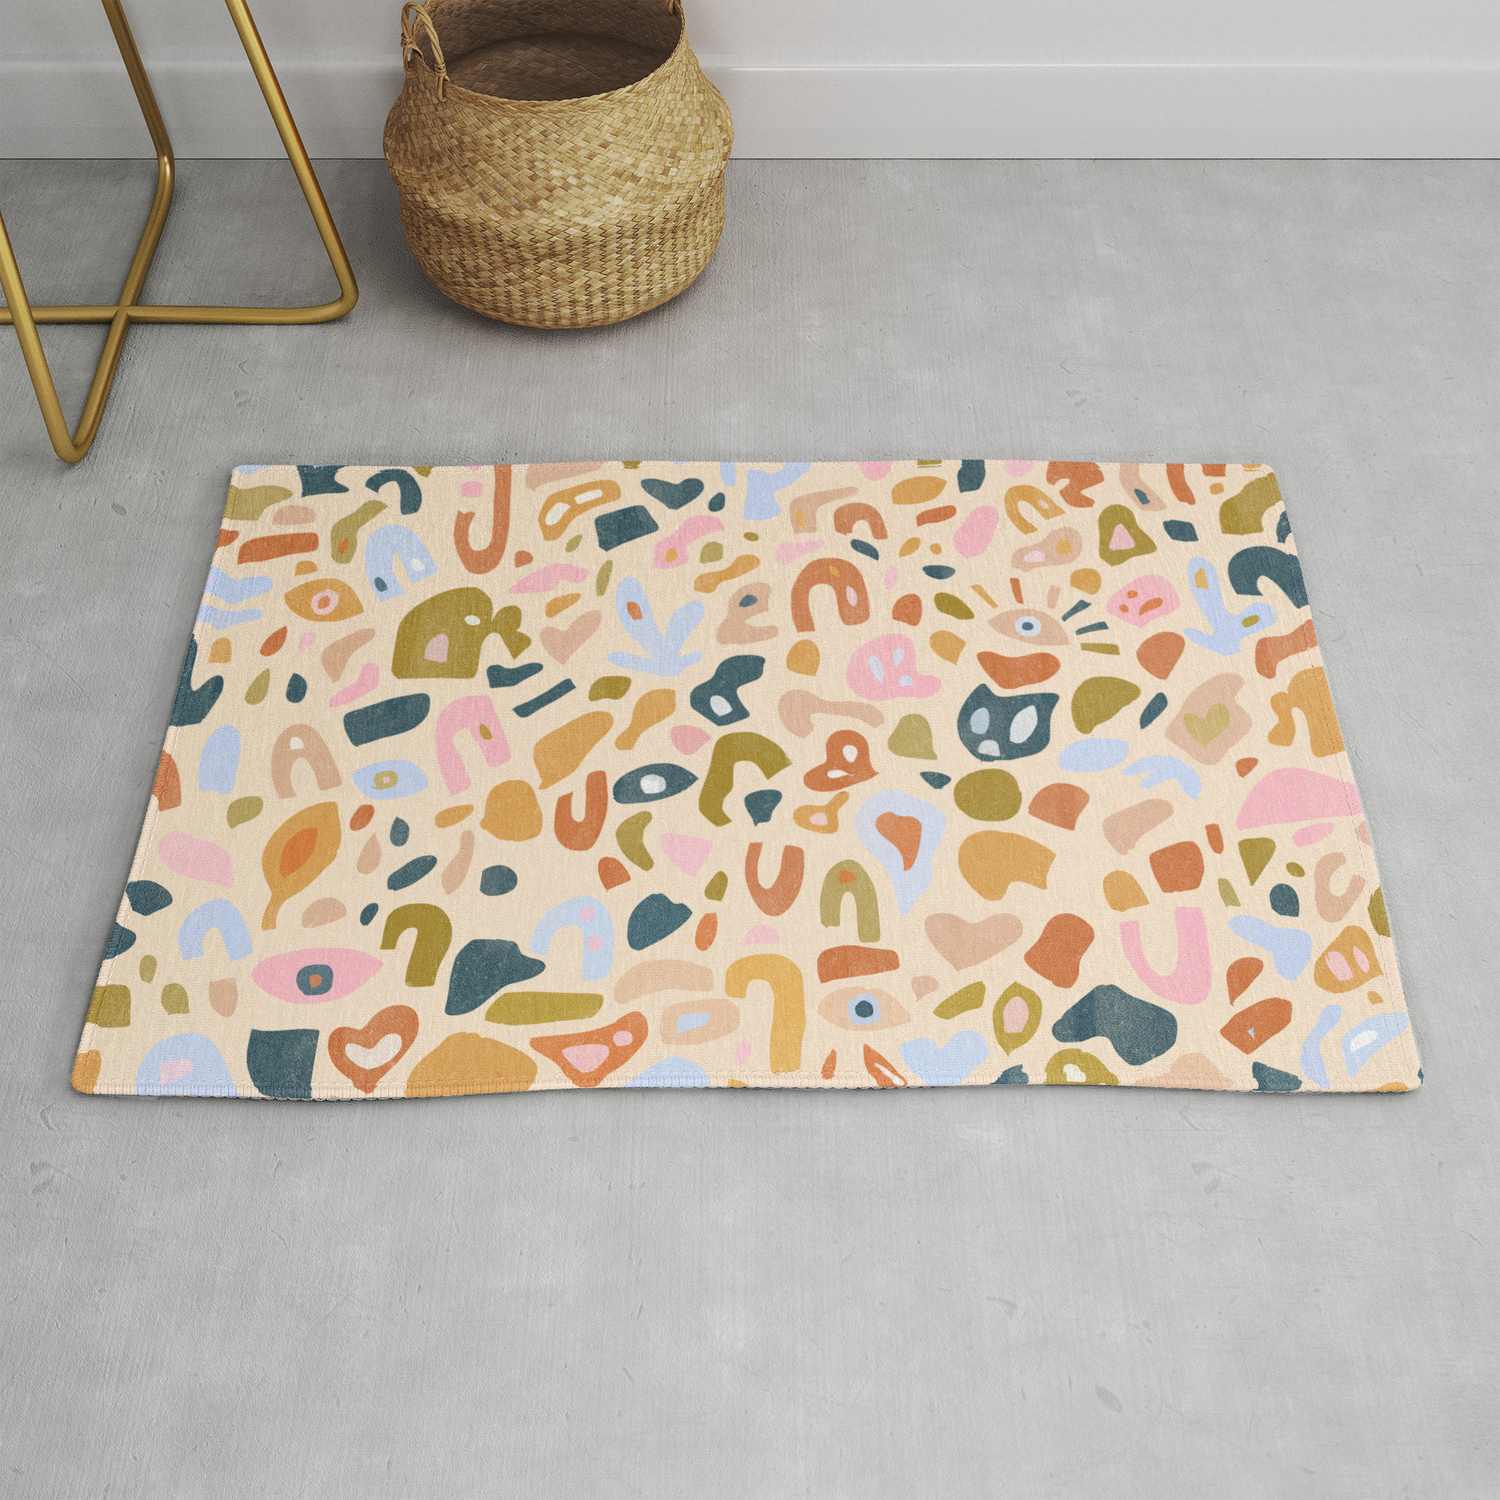 Abstract Paper Cuts Rug By Aljahorvat